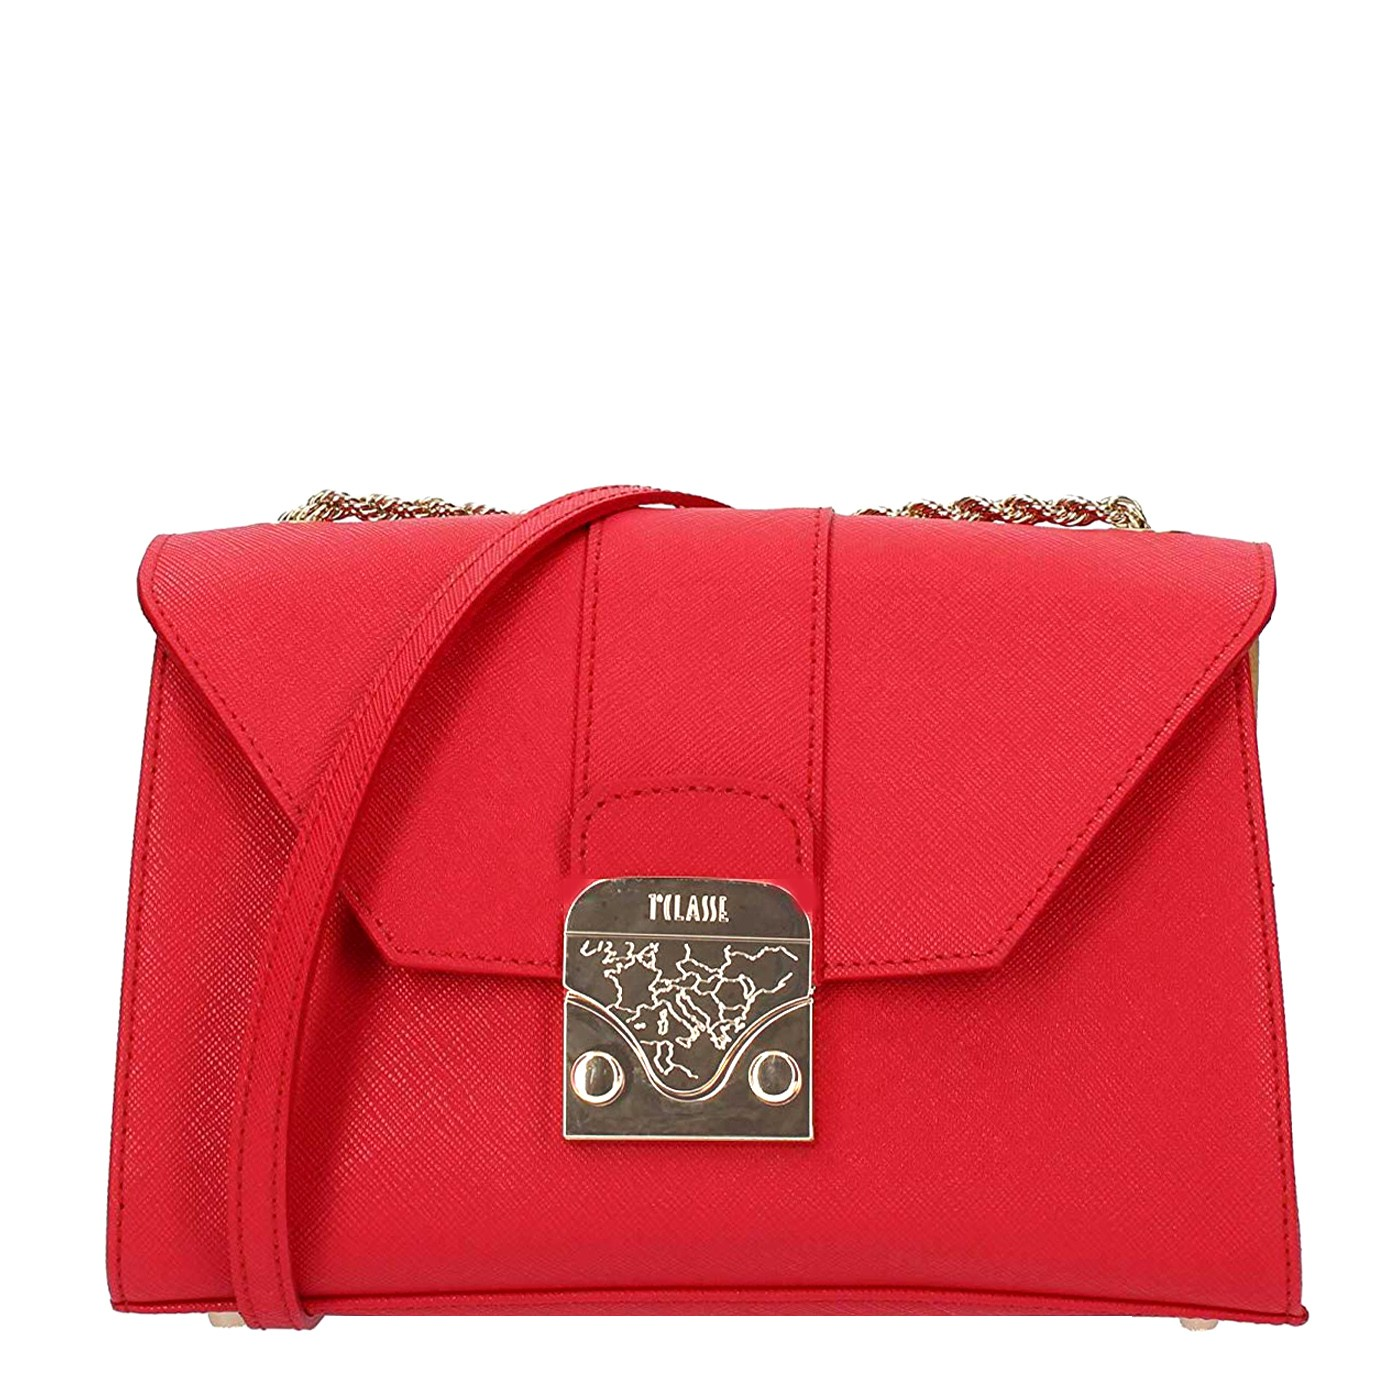 negozio online 313f7 cb67f Details about ALVIERO MARTINI FIRST CLASS shoulder bag with chain RED S/S  2019